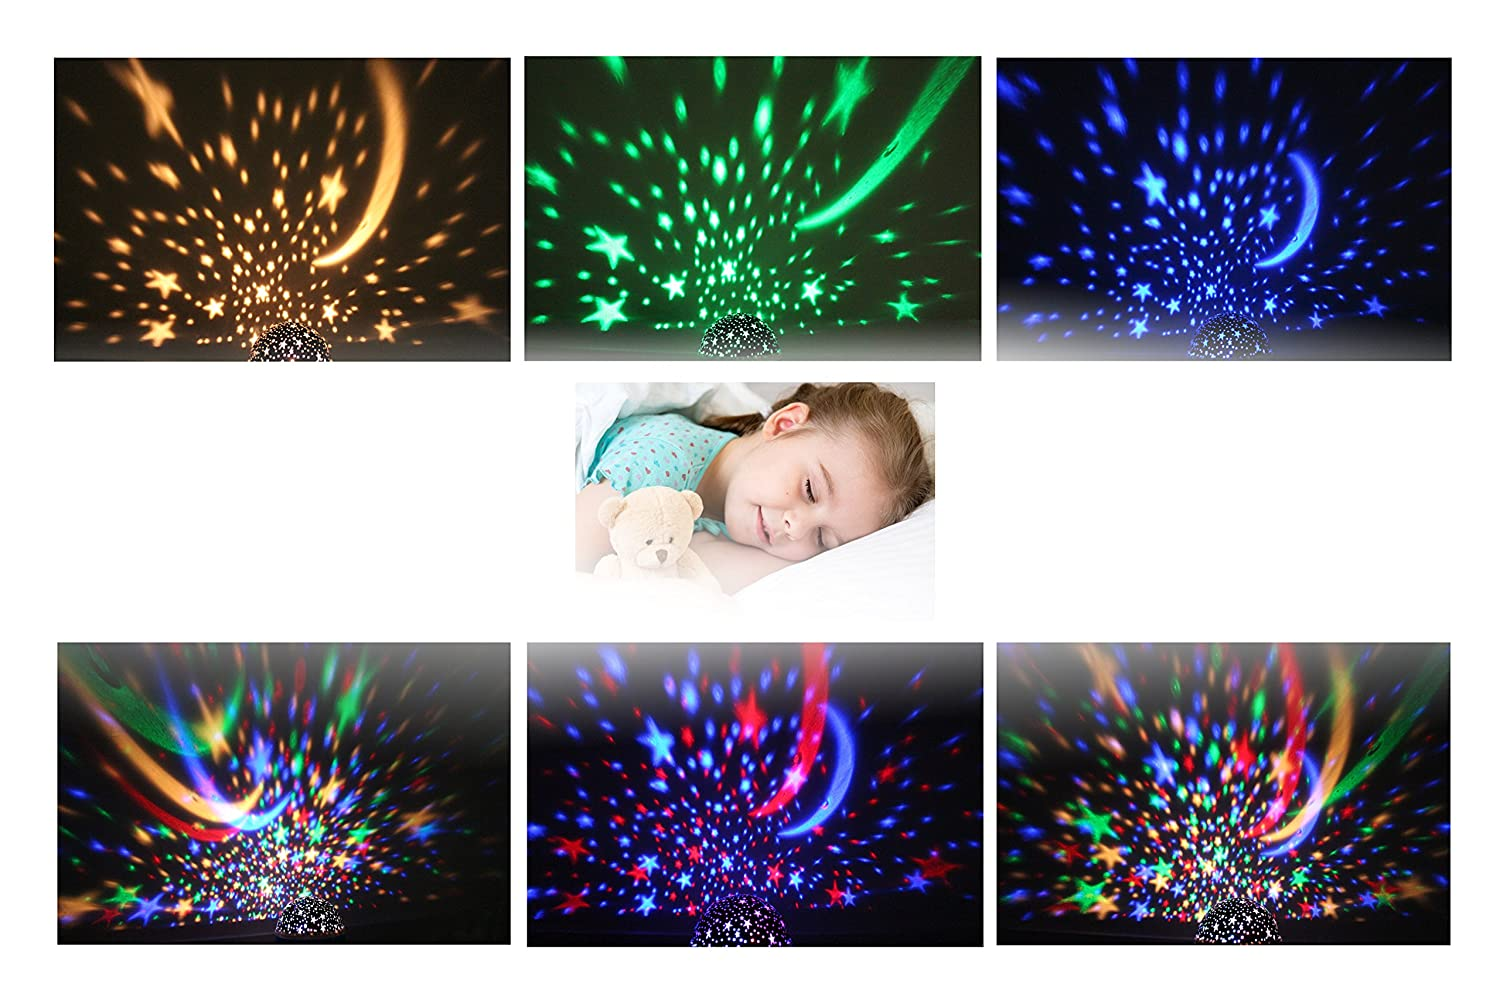 Lovely Automatic Rotating Projector Starry Sky 3d Table Lamp Novetly Snow Fireworks Star Projection Bedside Lamp Childrens Night Light Led Lamps